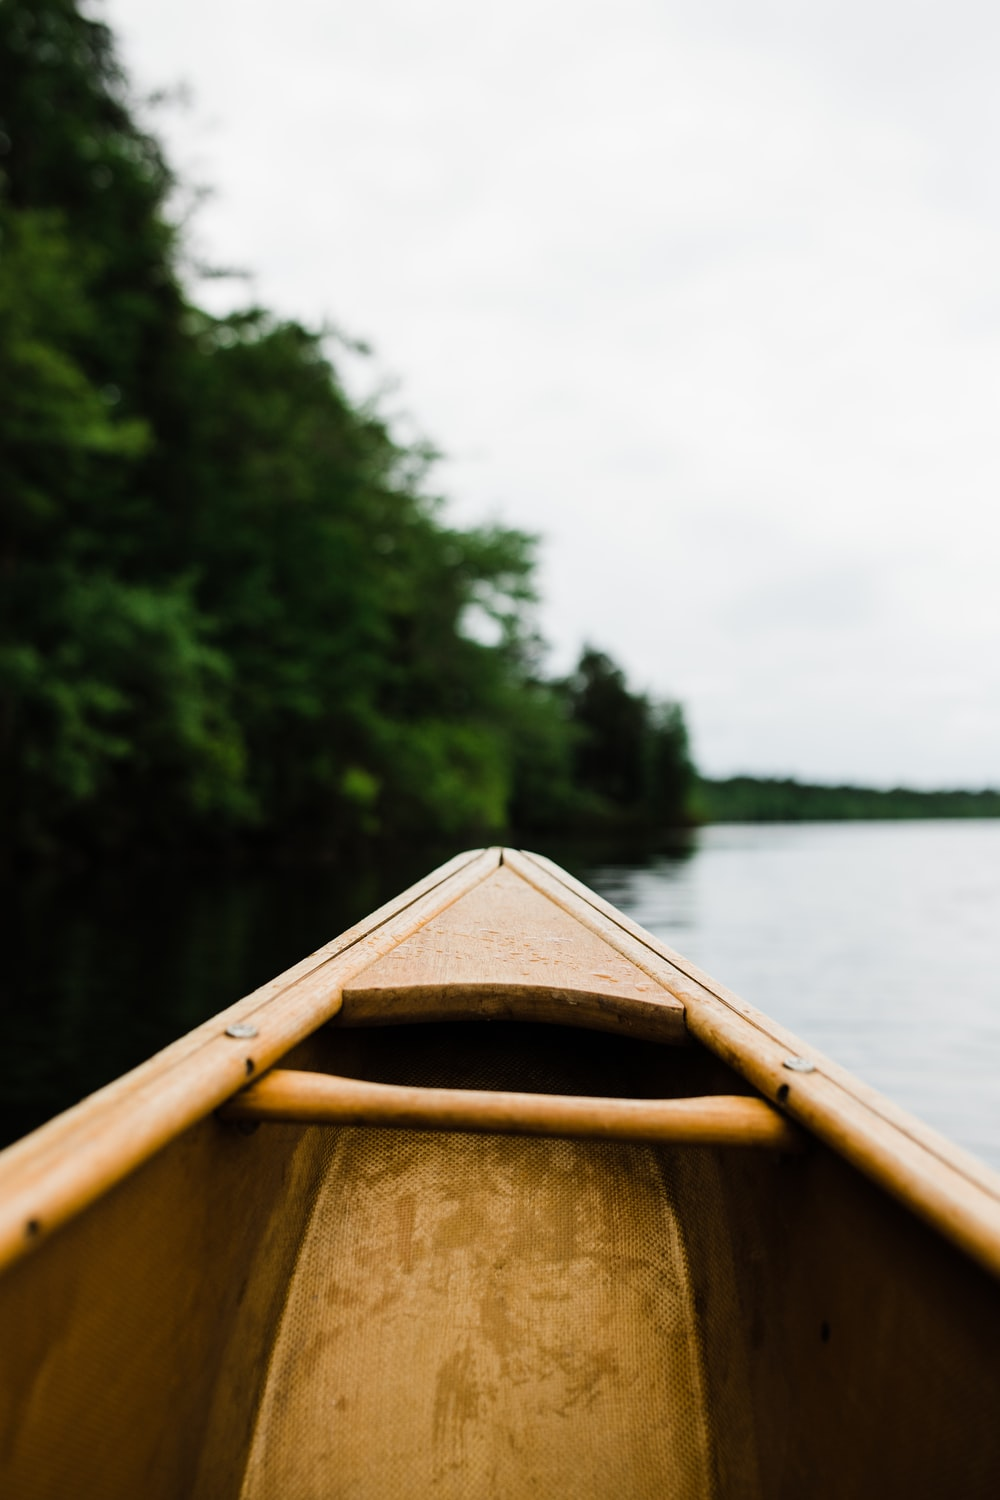 brown wooden boat near trees